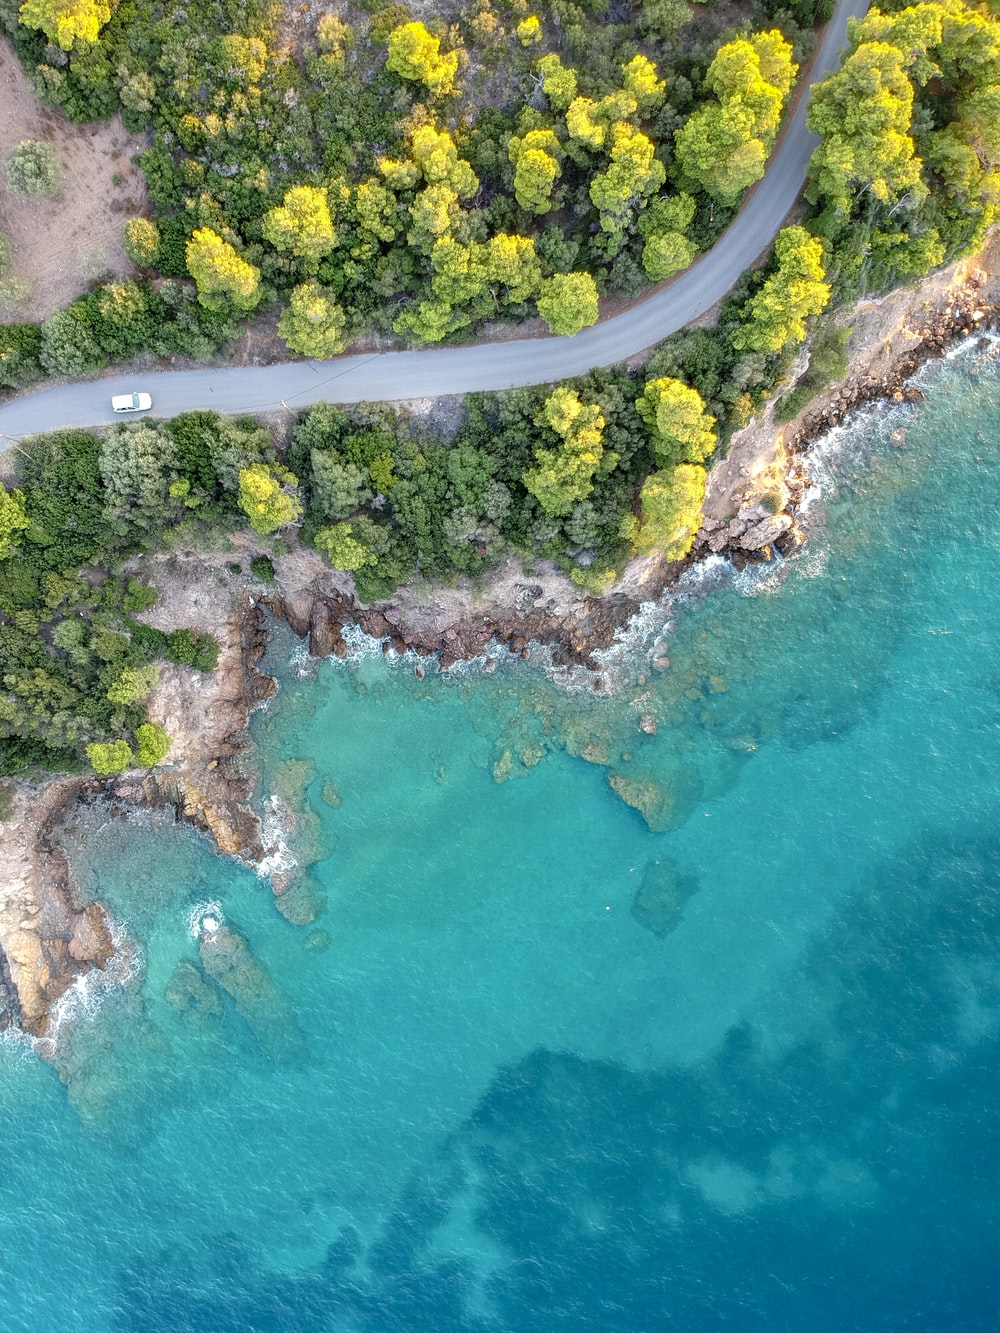 bird's-eye view photography of road in forest